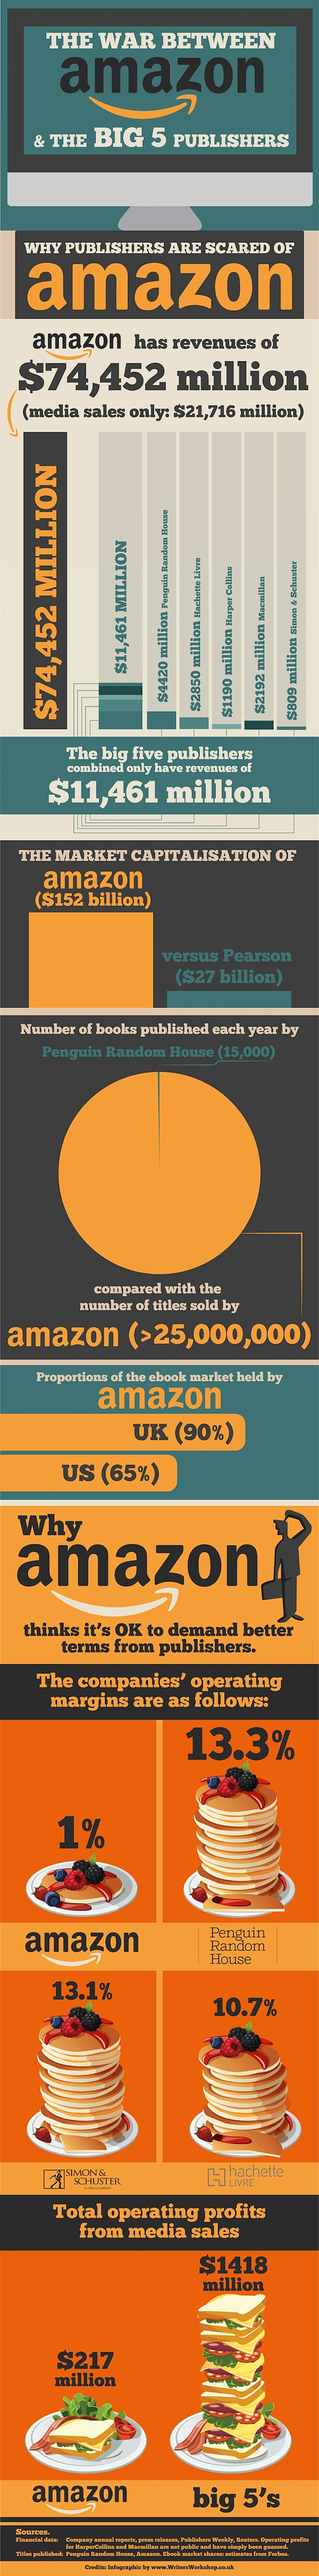 The-war-between-Amazon-and-the-biggest-publishers-infographic